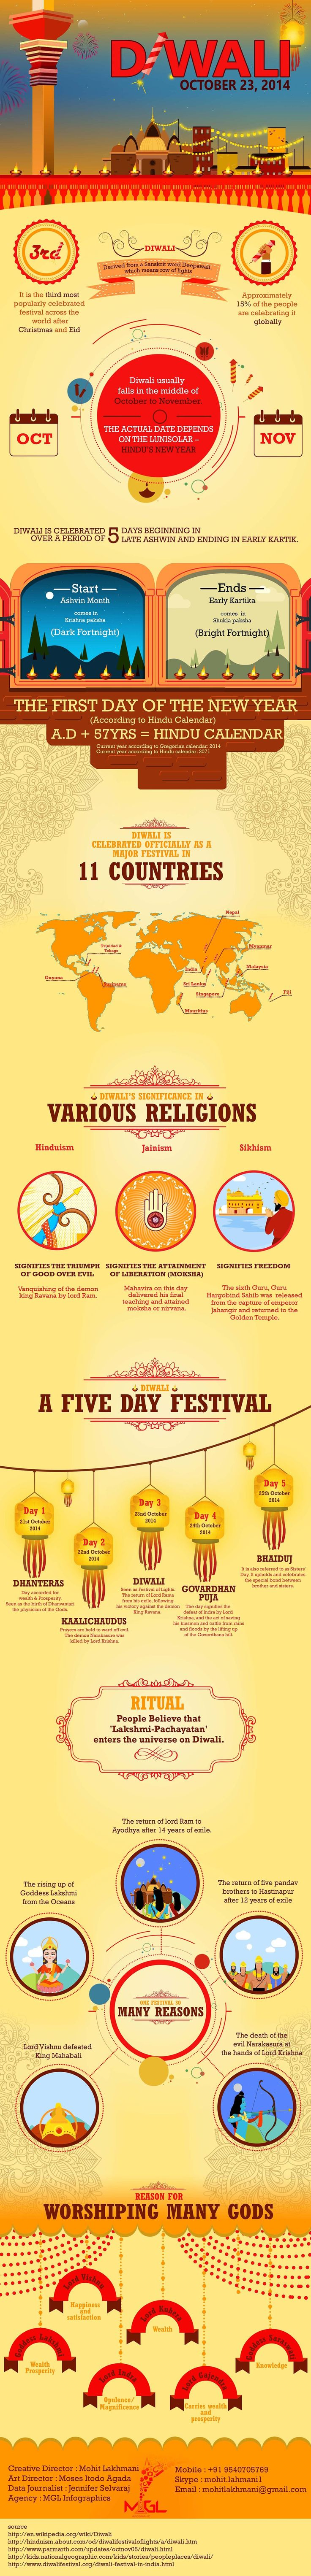 Diwali - festival of lights Infographic